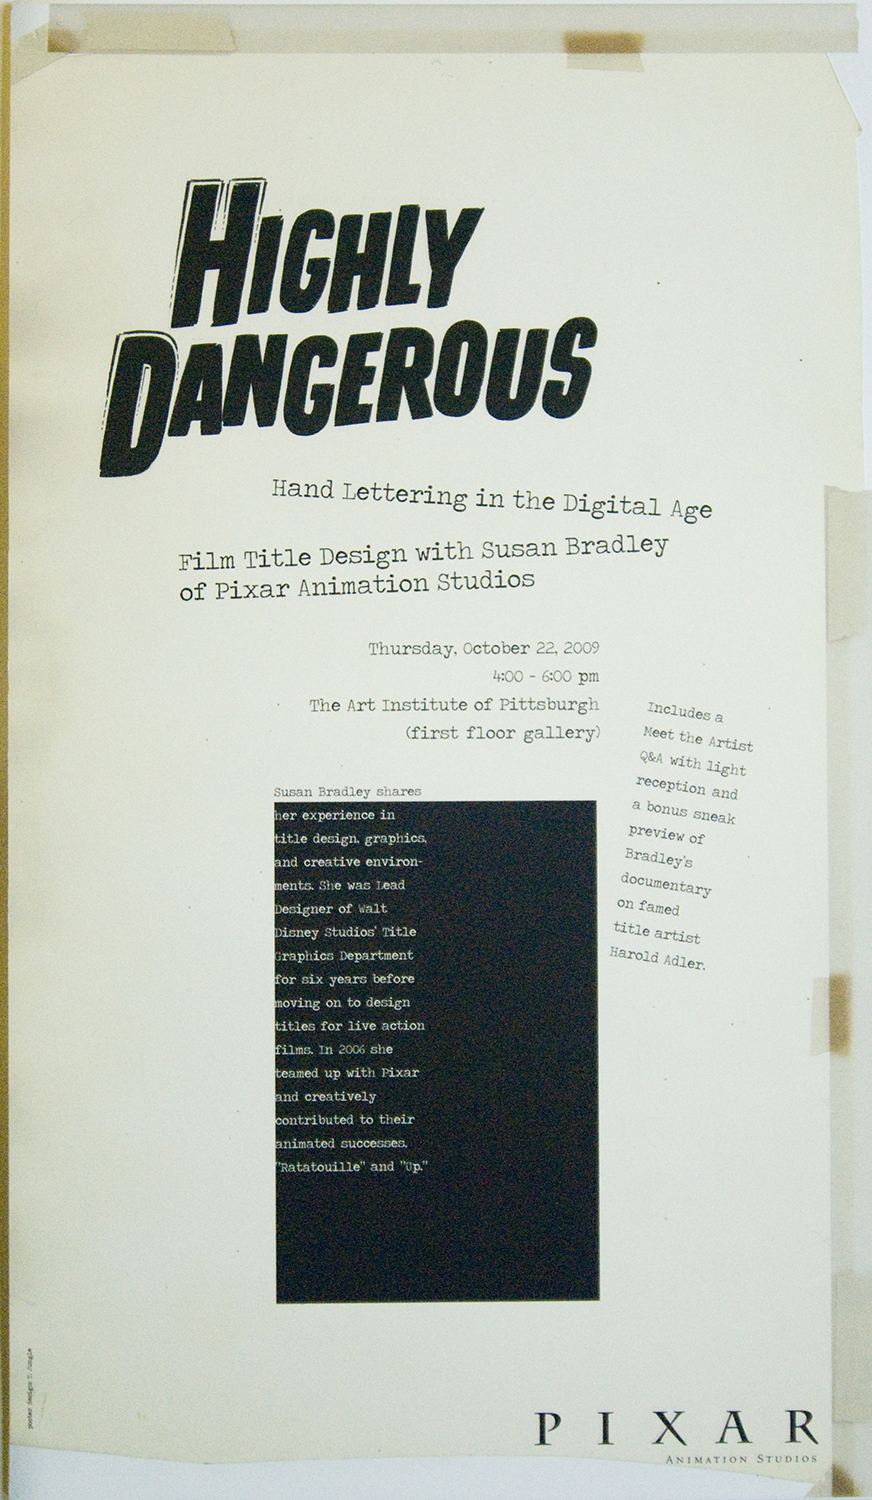 Highly Dangerous poster